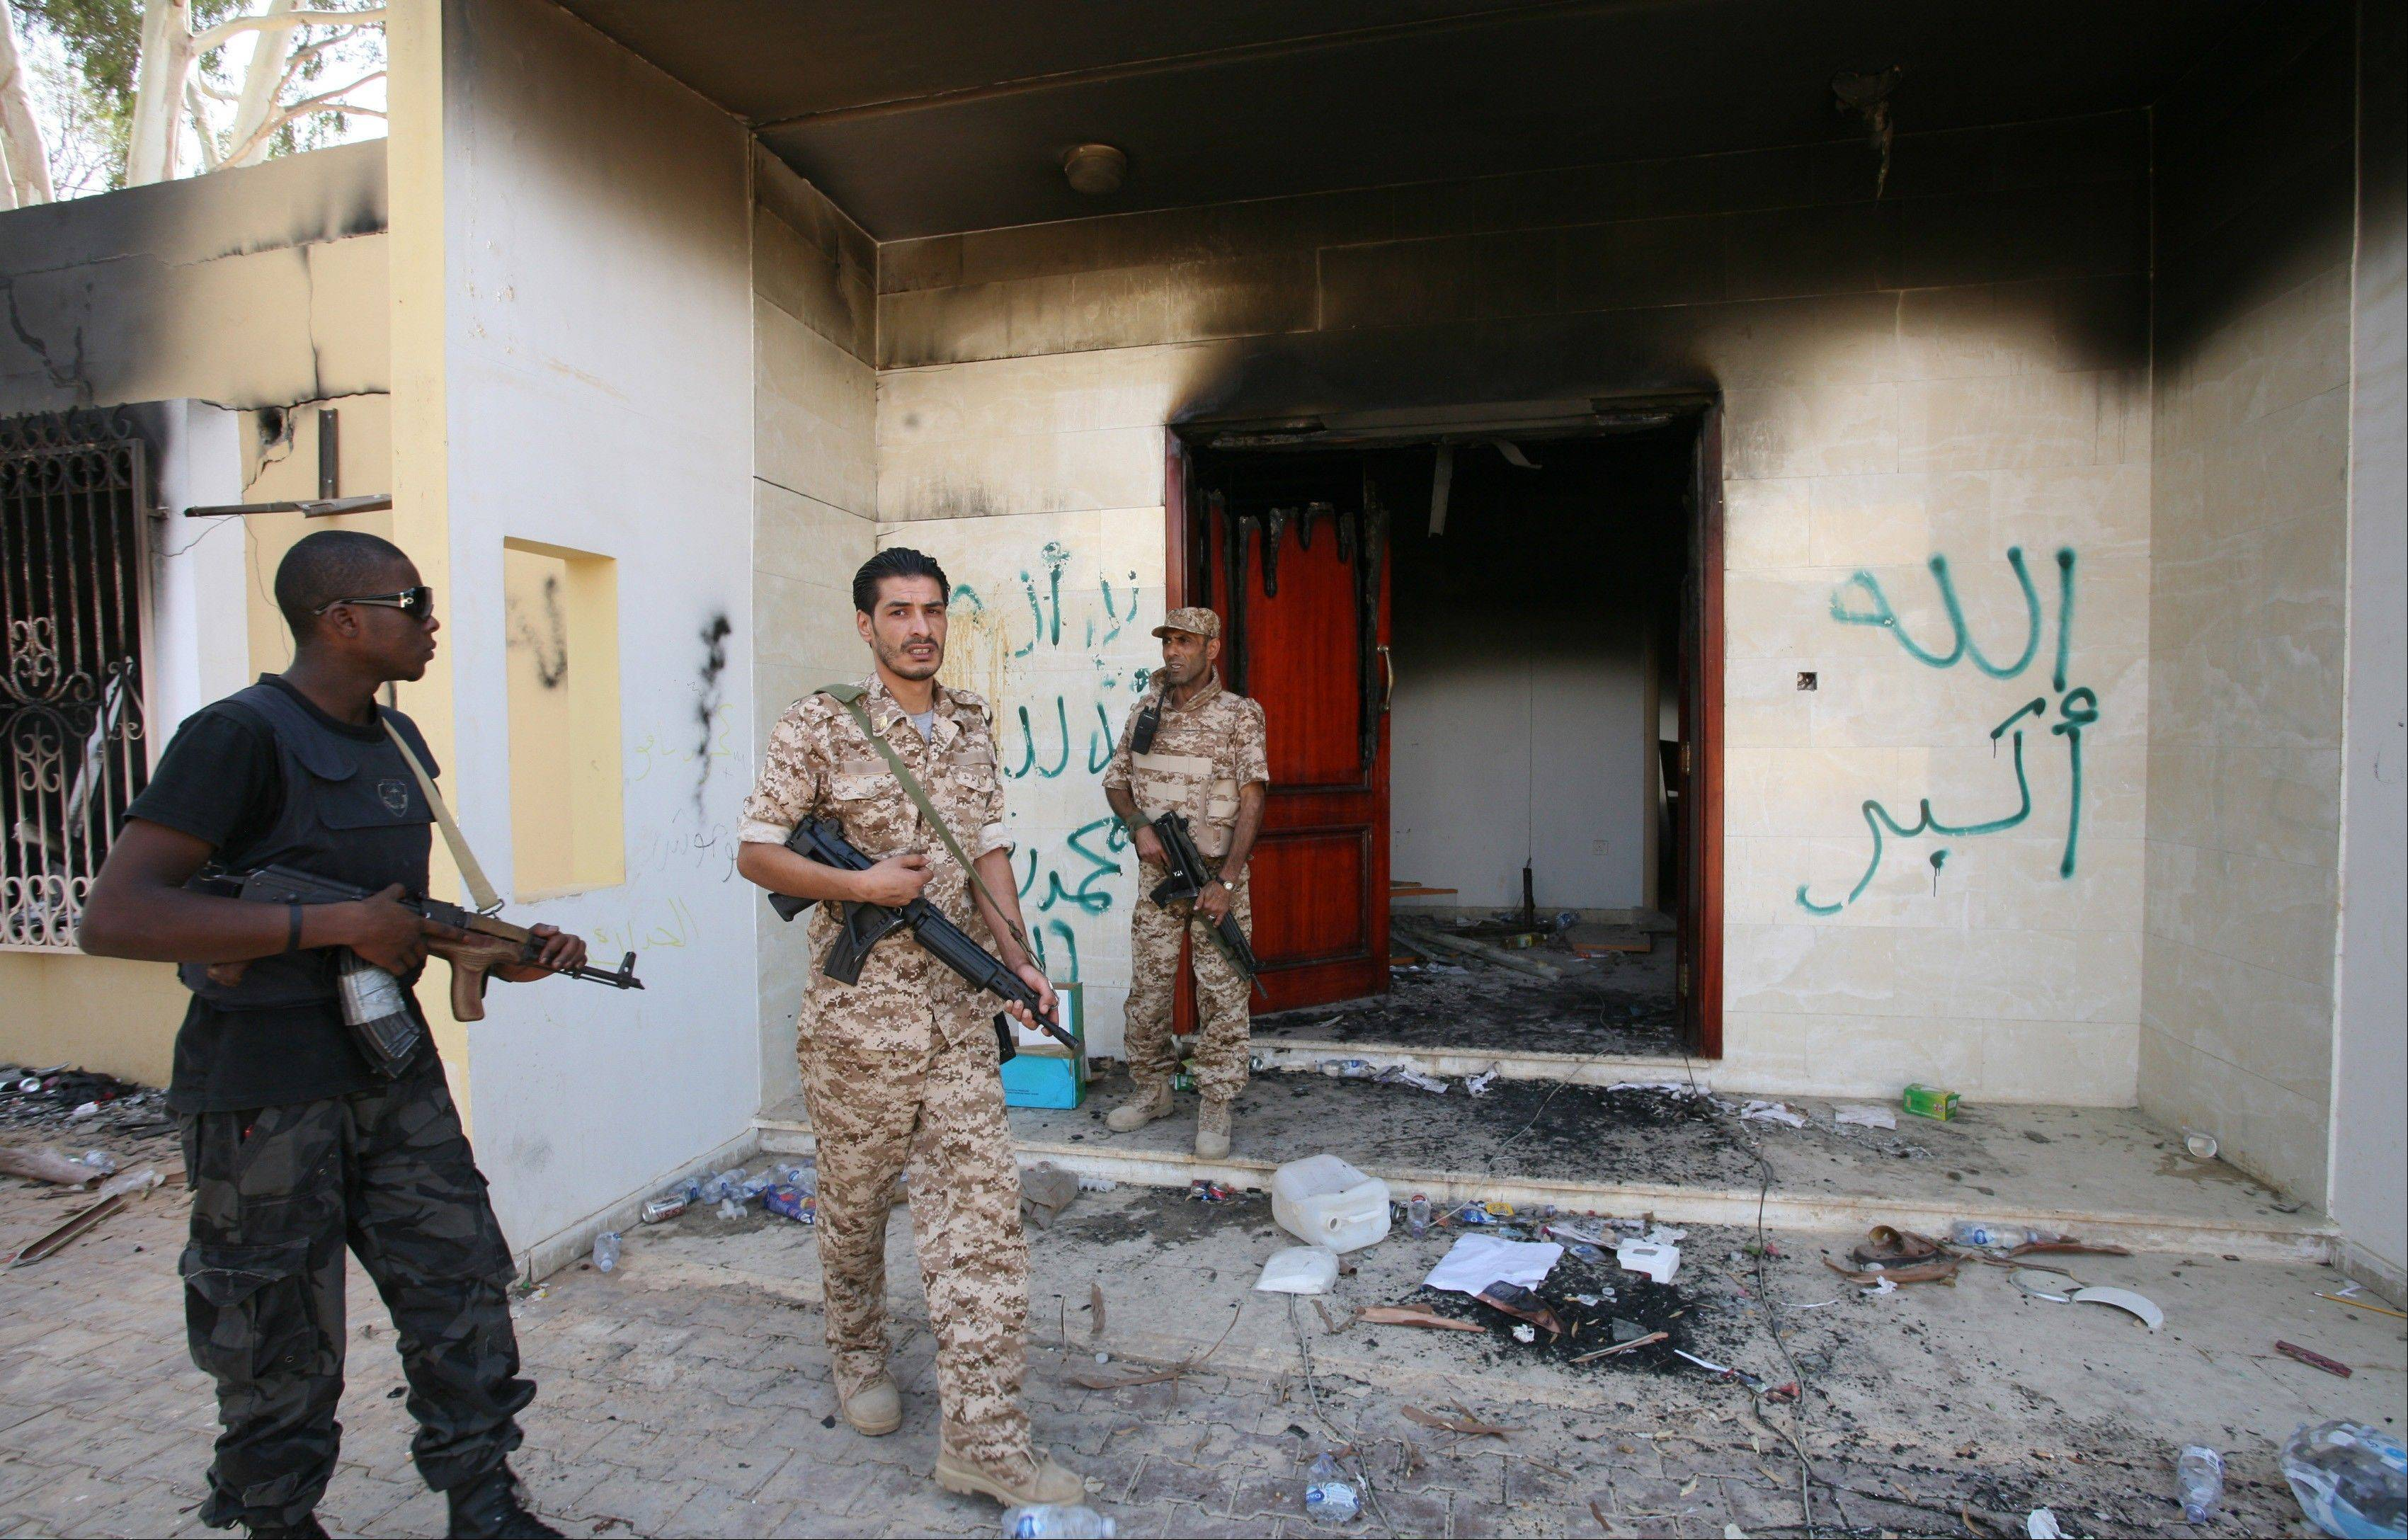 Libyan military guards check one of the U.S. Consulate's burnt buildings in Benghazi, Libya, Friday. The American ambassador to Libya and three other Americans were killed when a mob of protesters and gunmen overwhelmed the U.S. Consulate in Benghazi, setting fire to it.